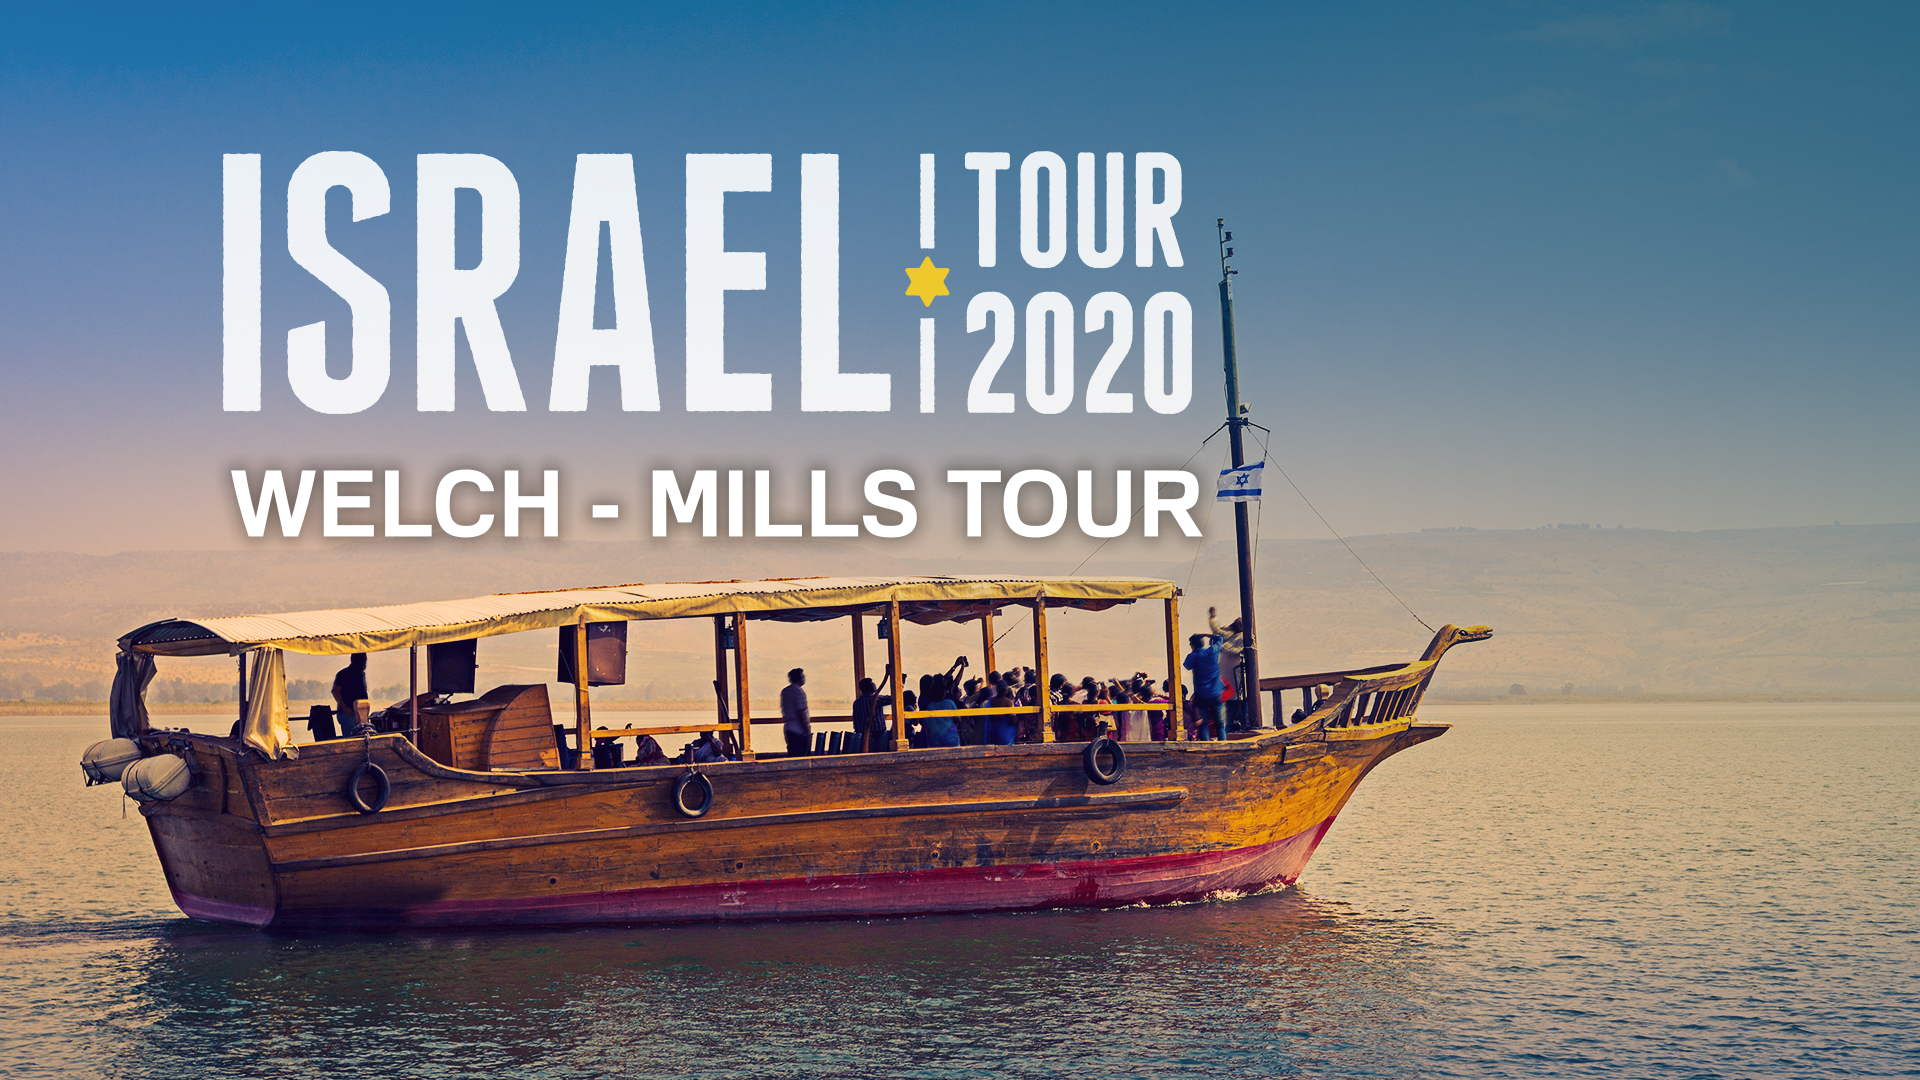 Secure your spot for a life changing trip to the Holy Land. Details released soon.